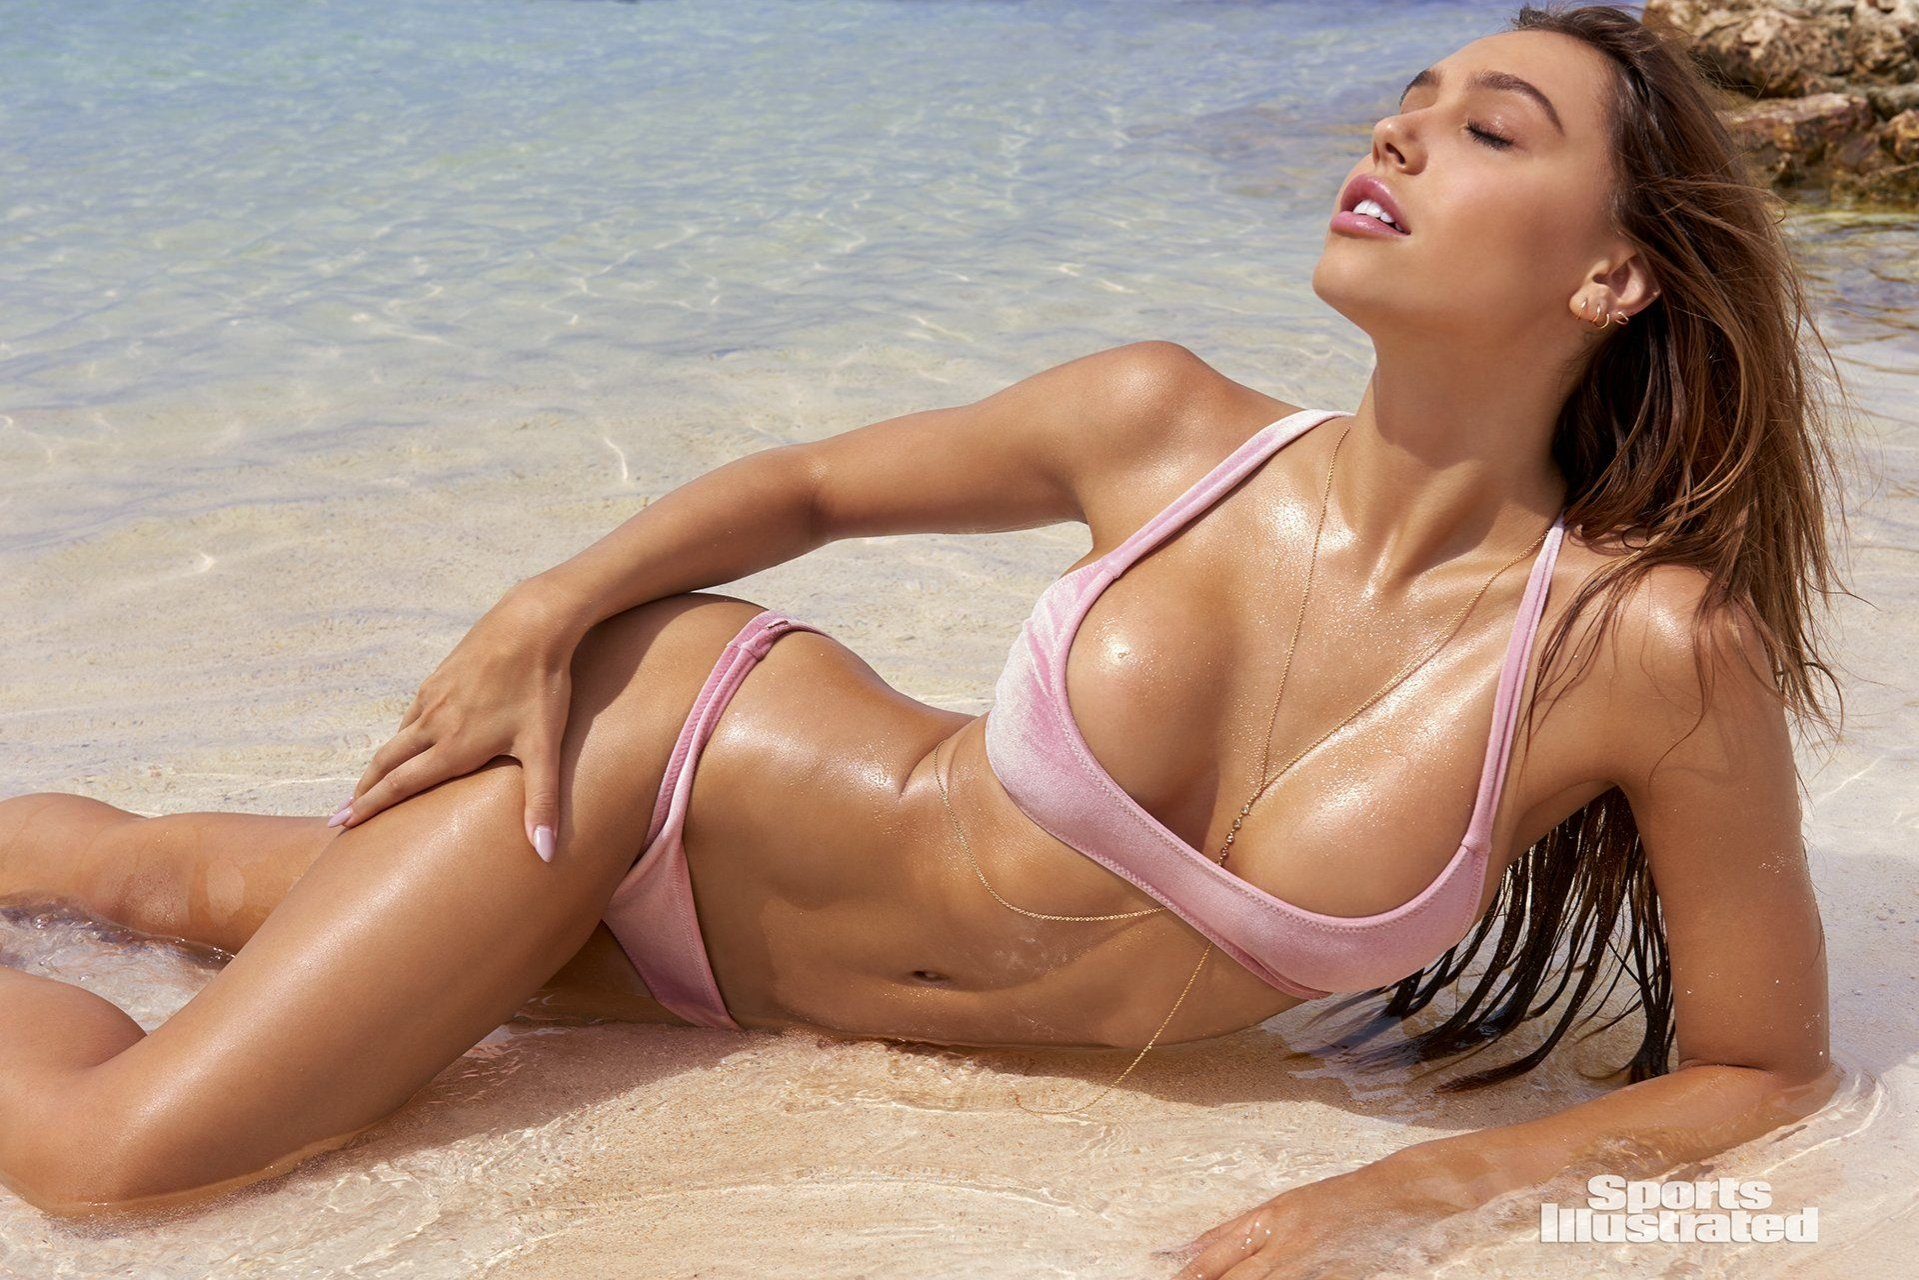 Alexis Ren – 2018 Sports Illustrated Swimsuit Issue | #TheFappening